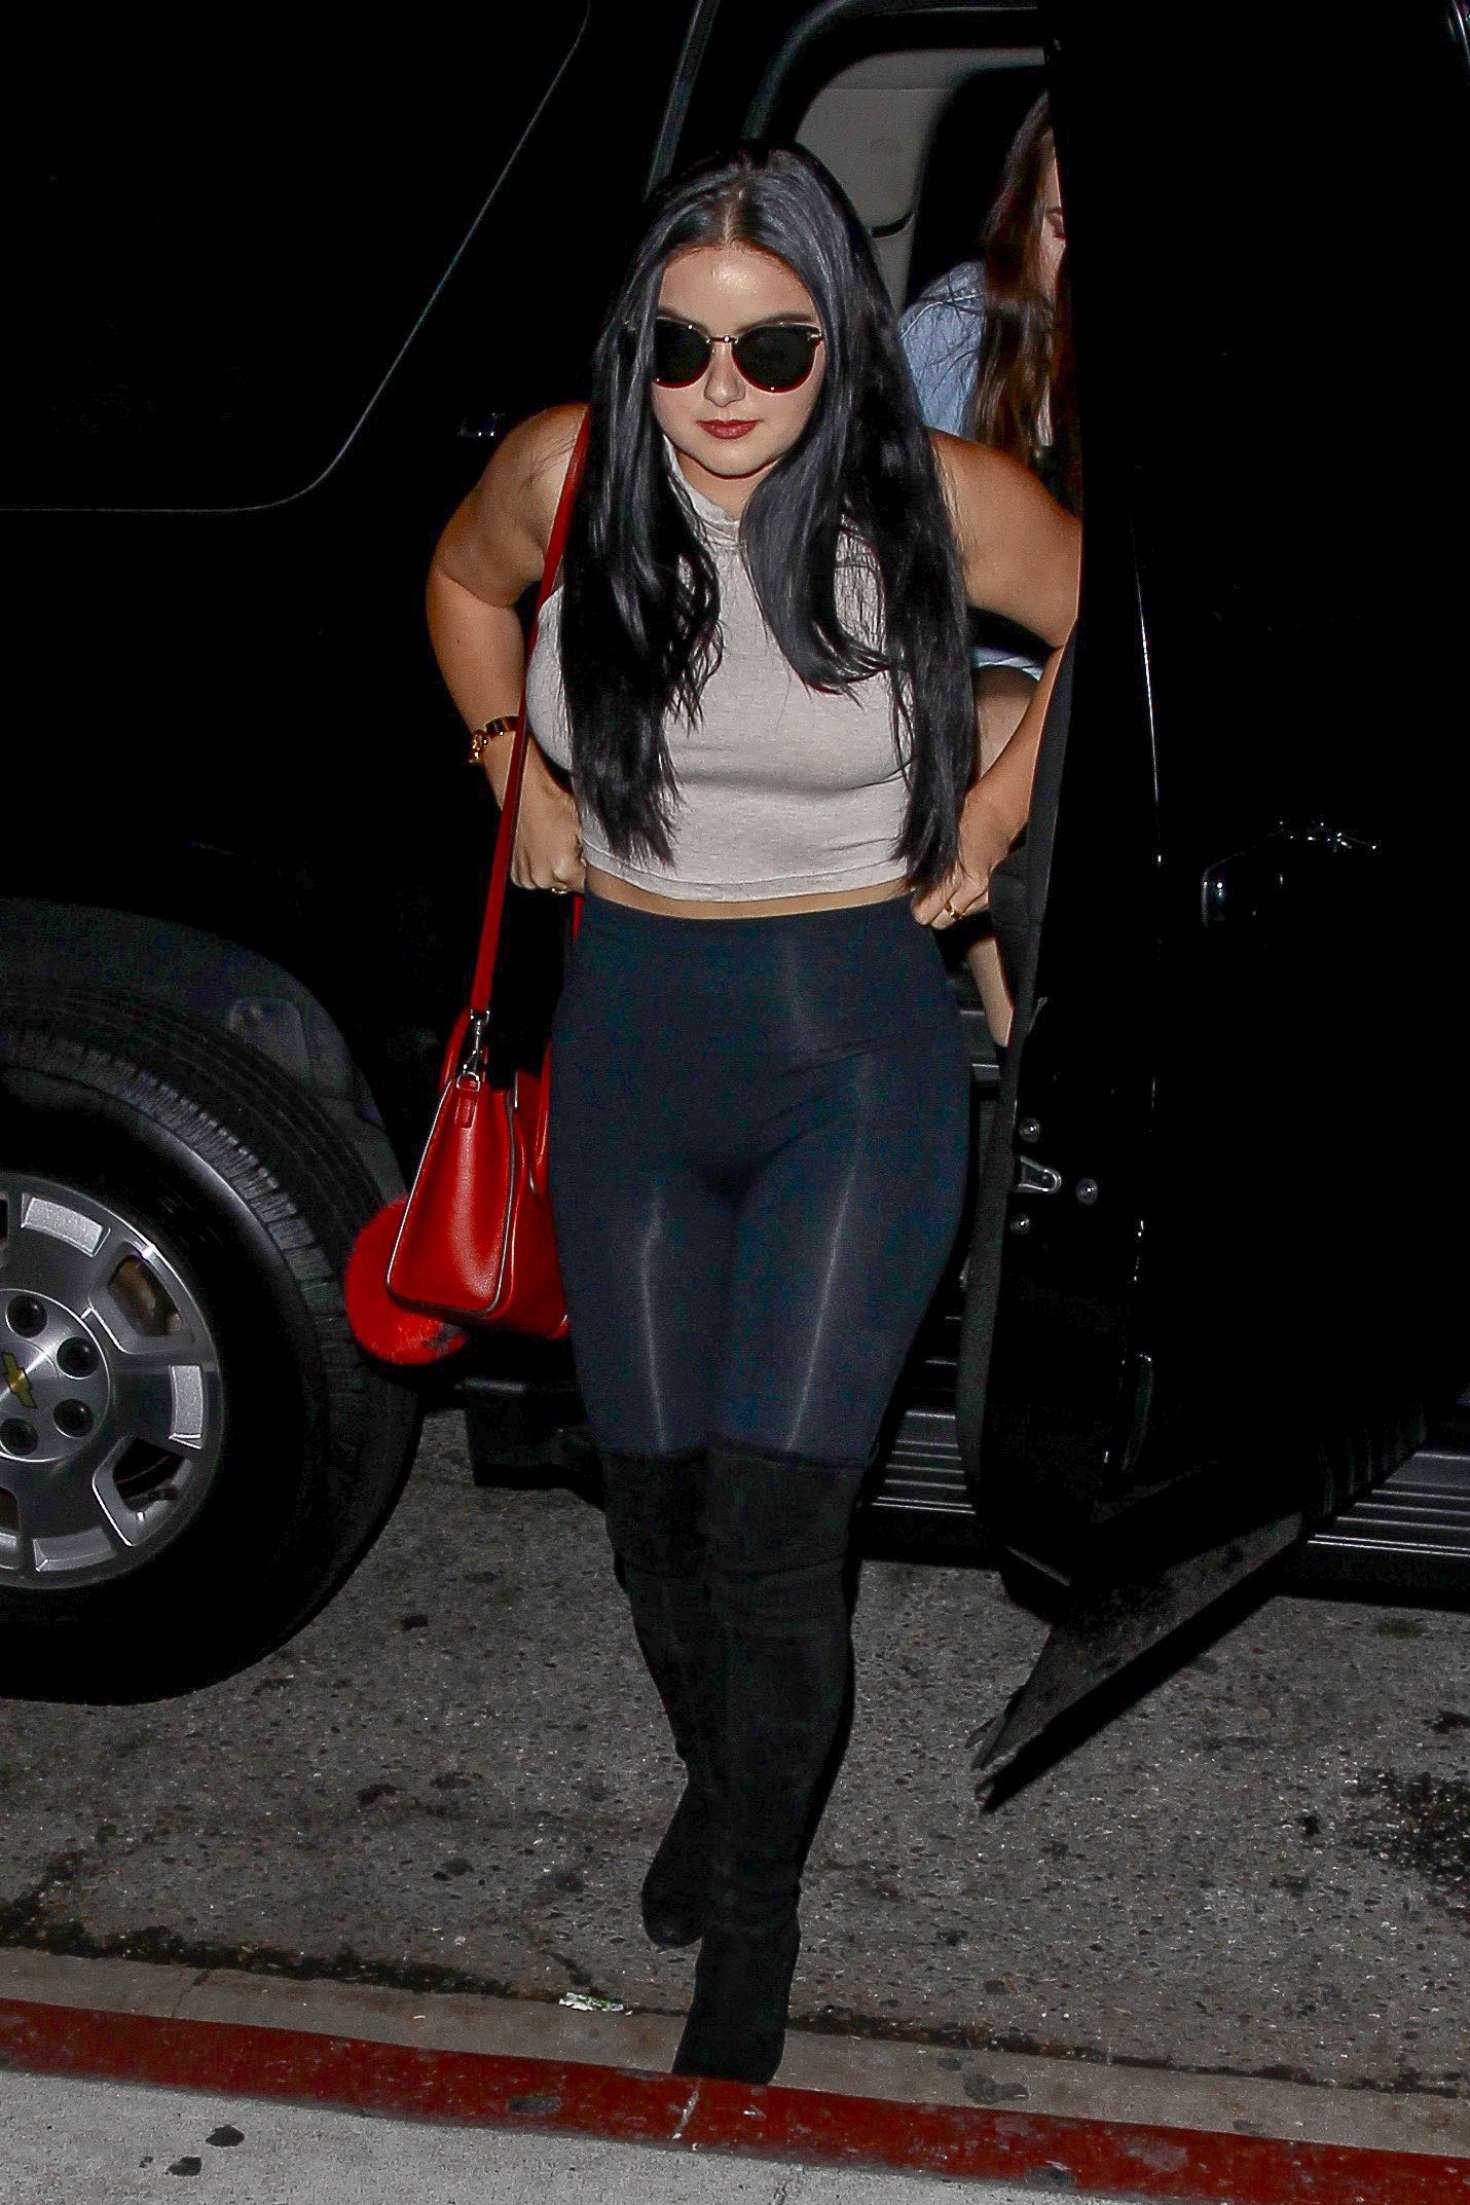 Ariel Winter In Tights At The The Nice Guy In West